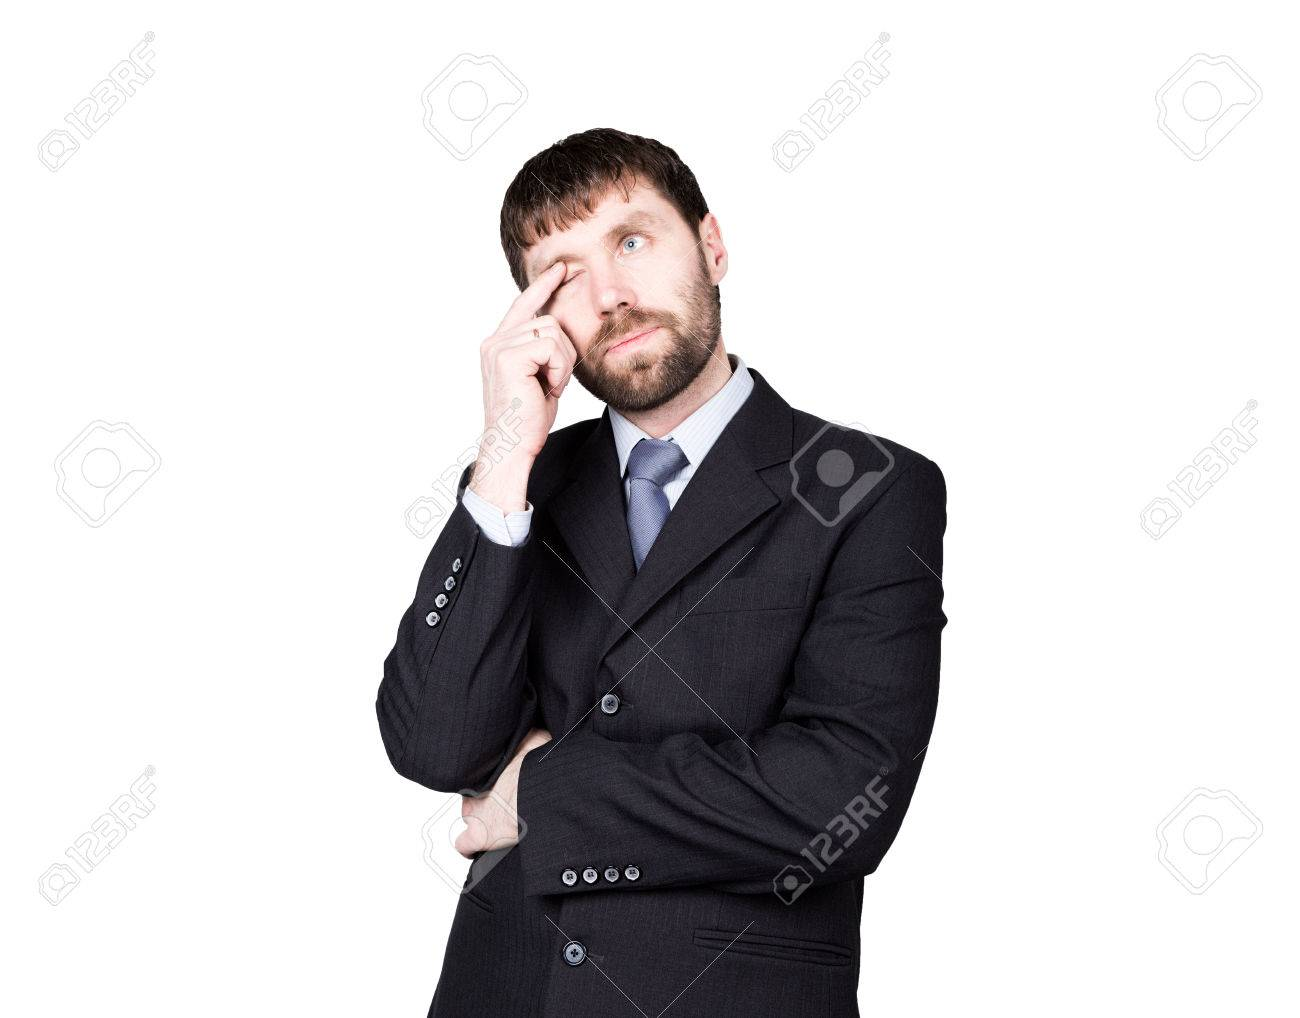 gestures distrust lies. body language. man in business suit, finger touches the lower eyelid, eye. isolated on white background. concept of true or false. - 55727554